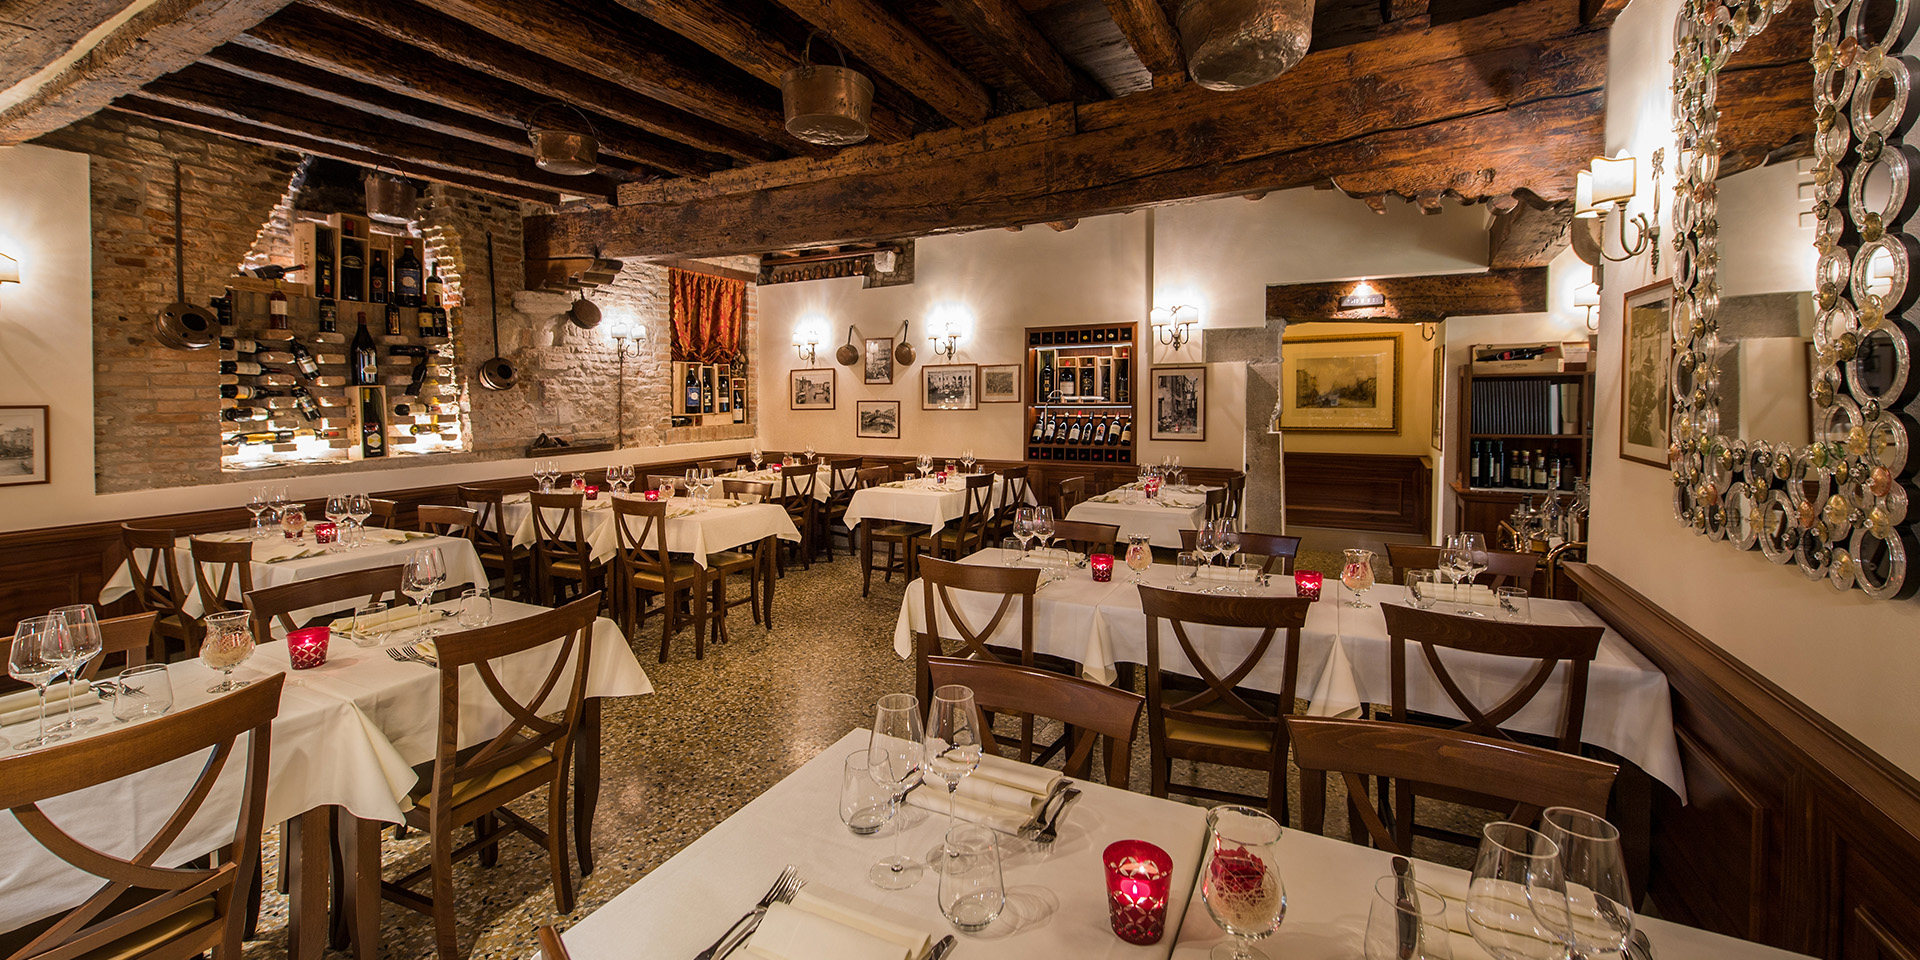 Vini da Pinto - the main dining area of the restaurant